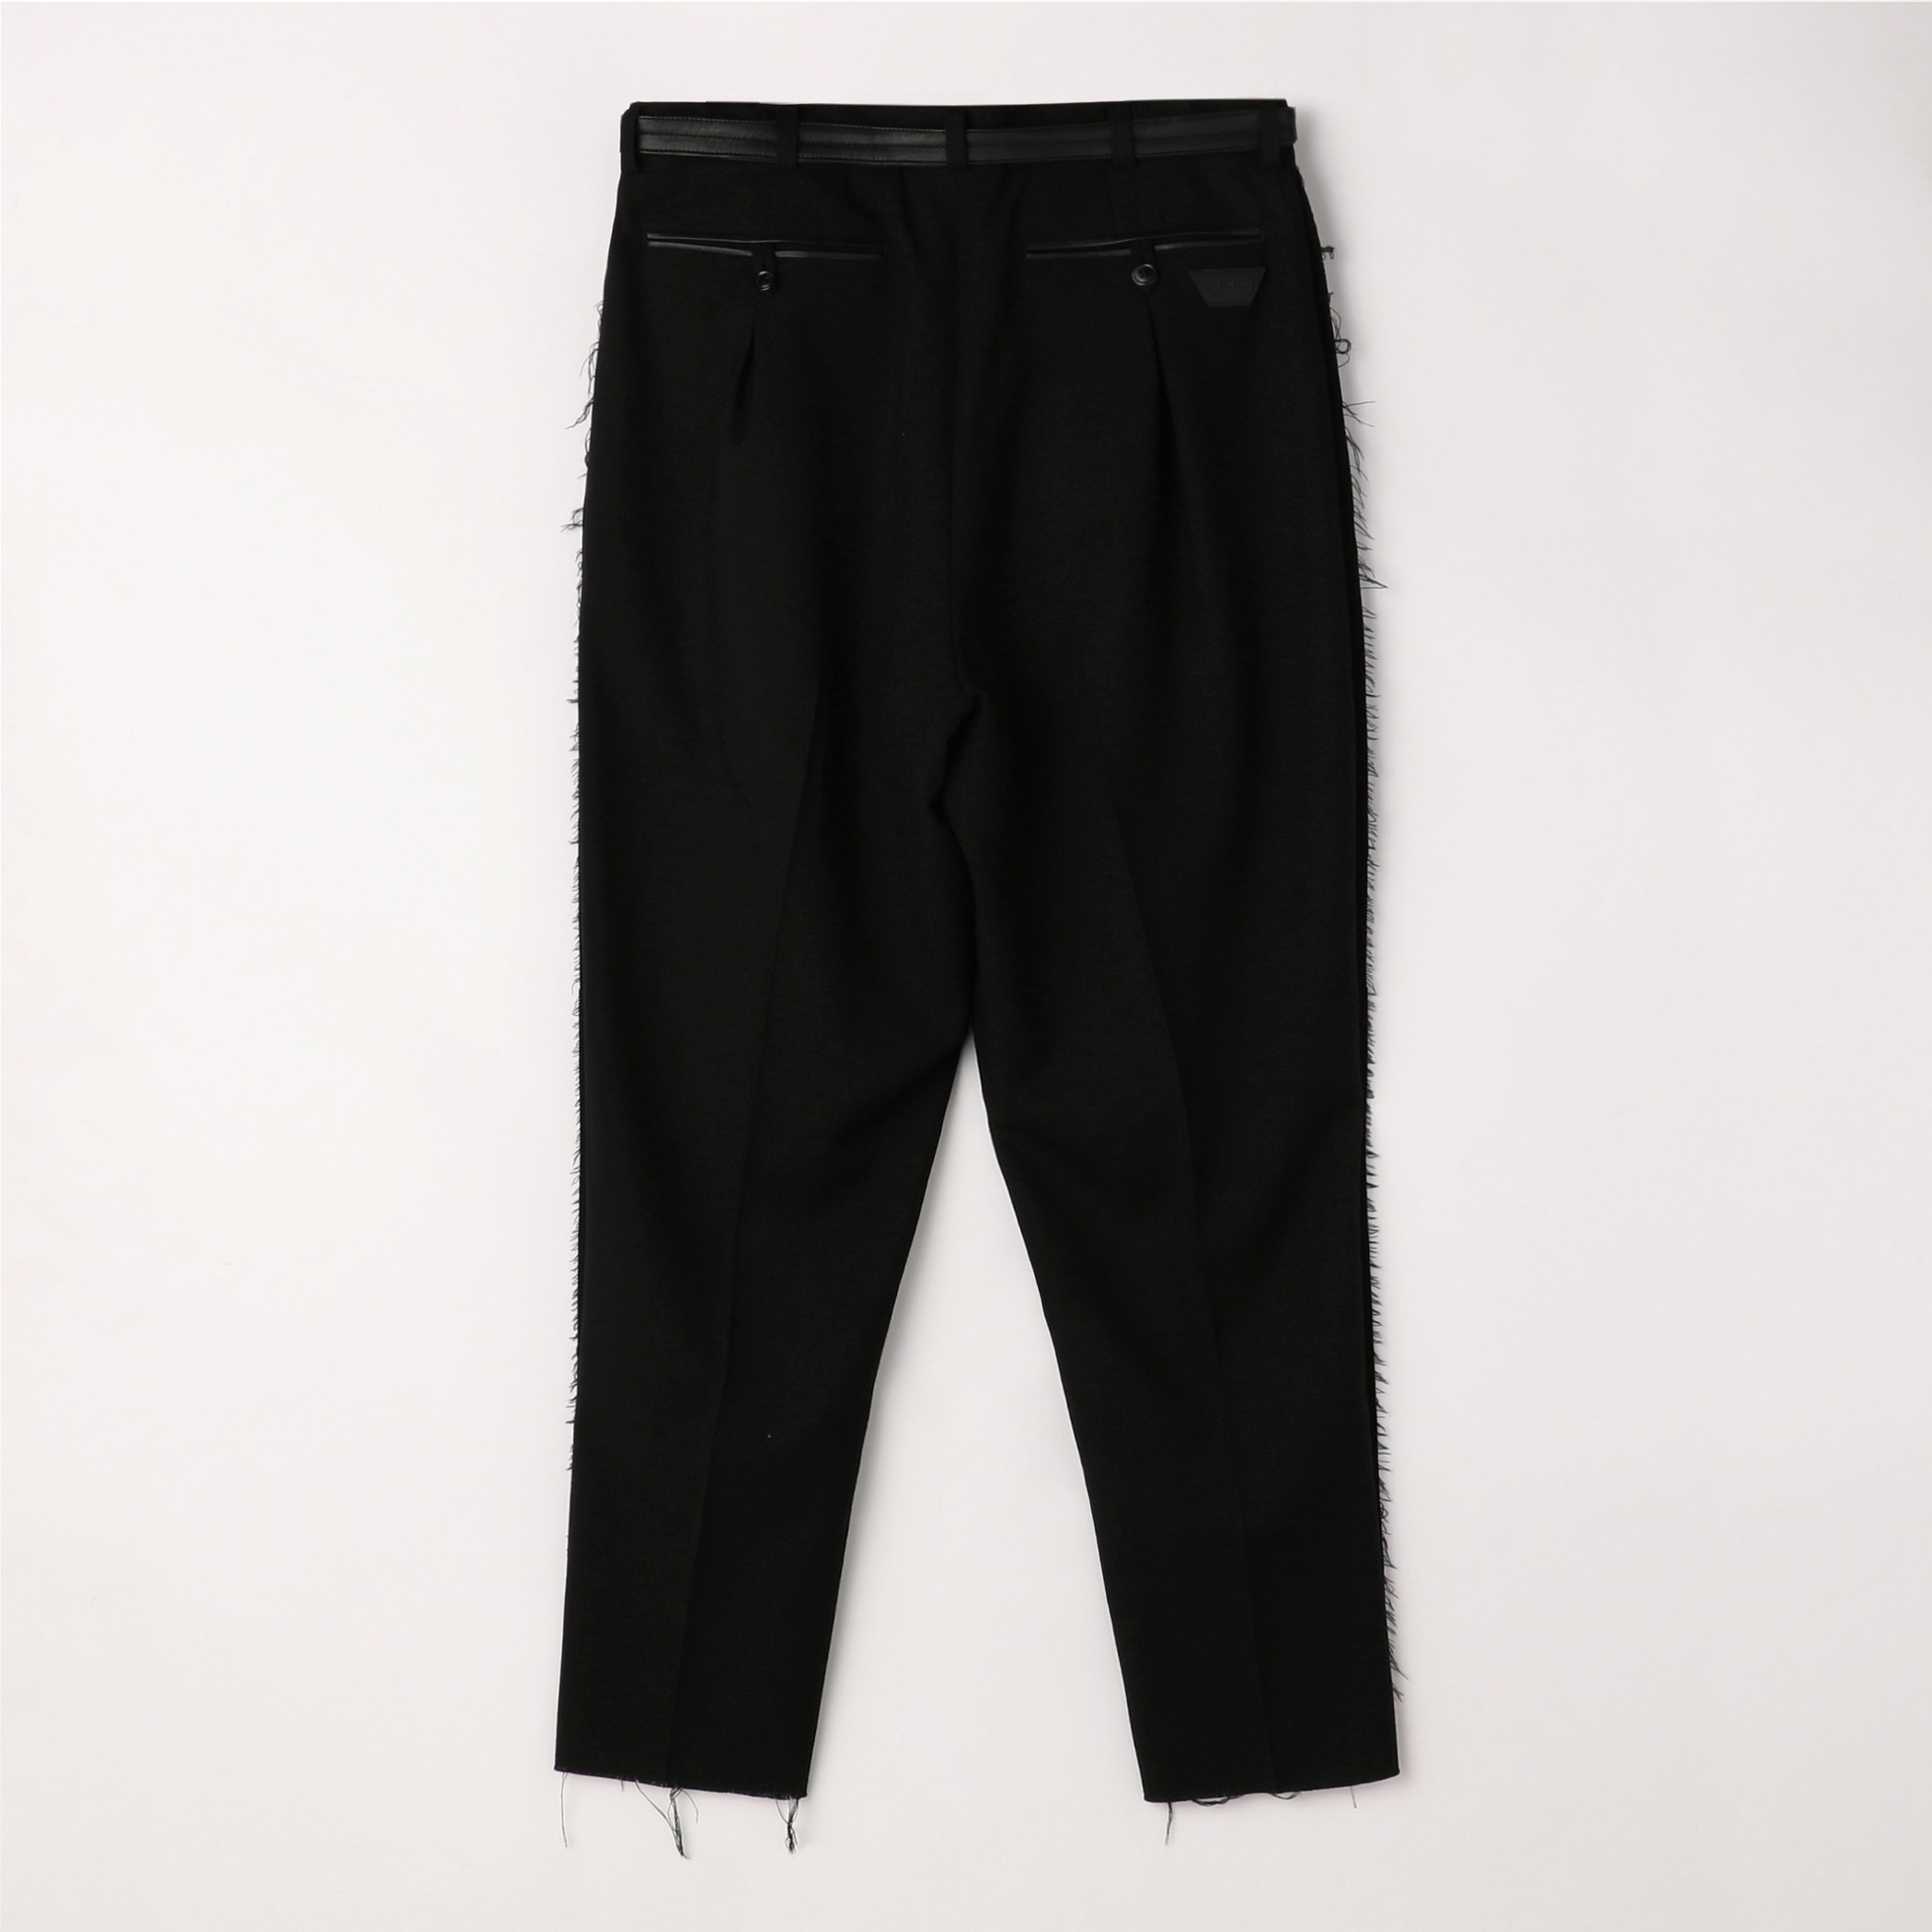 TAILORED TROUSERS 詳細画像 Black 1